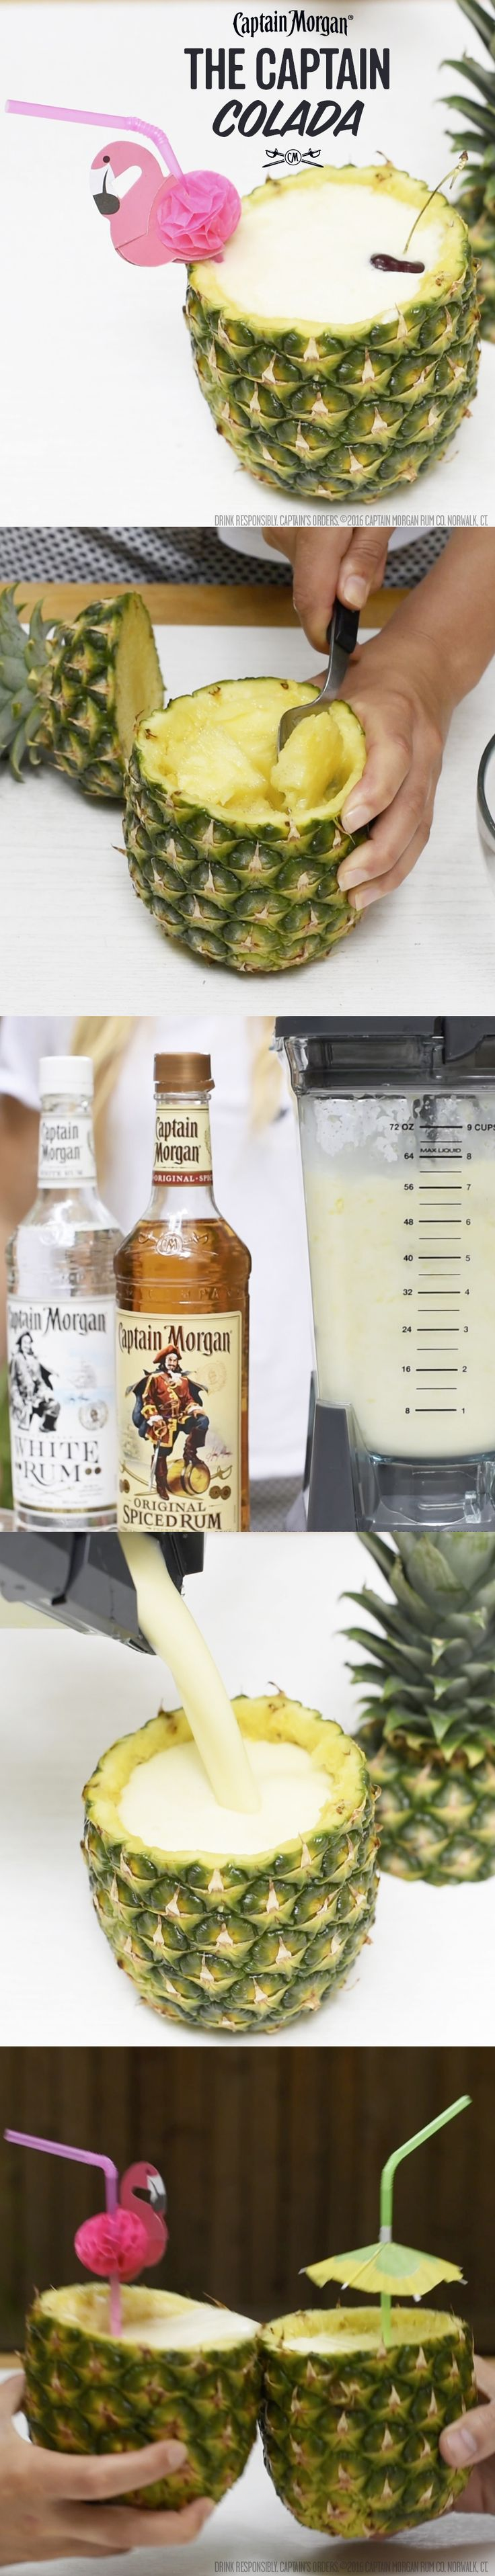 The Captain Colada, goes well with putting on the best BBQ ever. Recipe: 1 oz Captain Morgan Original Spiced Rum 0.5 oz Captain Morgan White Rum 1 oz Pineapple juice 0.5 oz cream of coconut Cherry garnish Get more rum recipes at https://us.captainmorgan.com/rum-cocktails/?utm_source=pinterest&utm_medium=social&utm_term=bbq&utm_content=captain_colada&utm_campaign=recipe